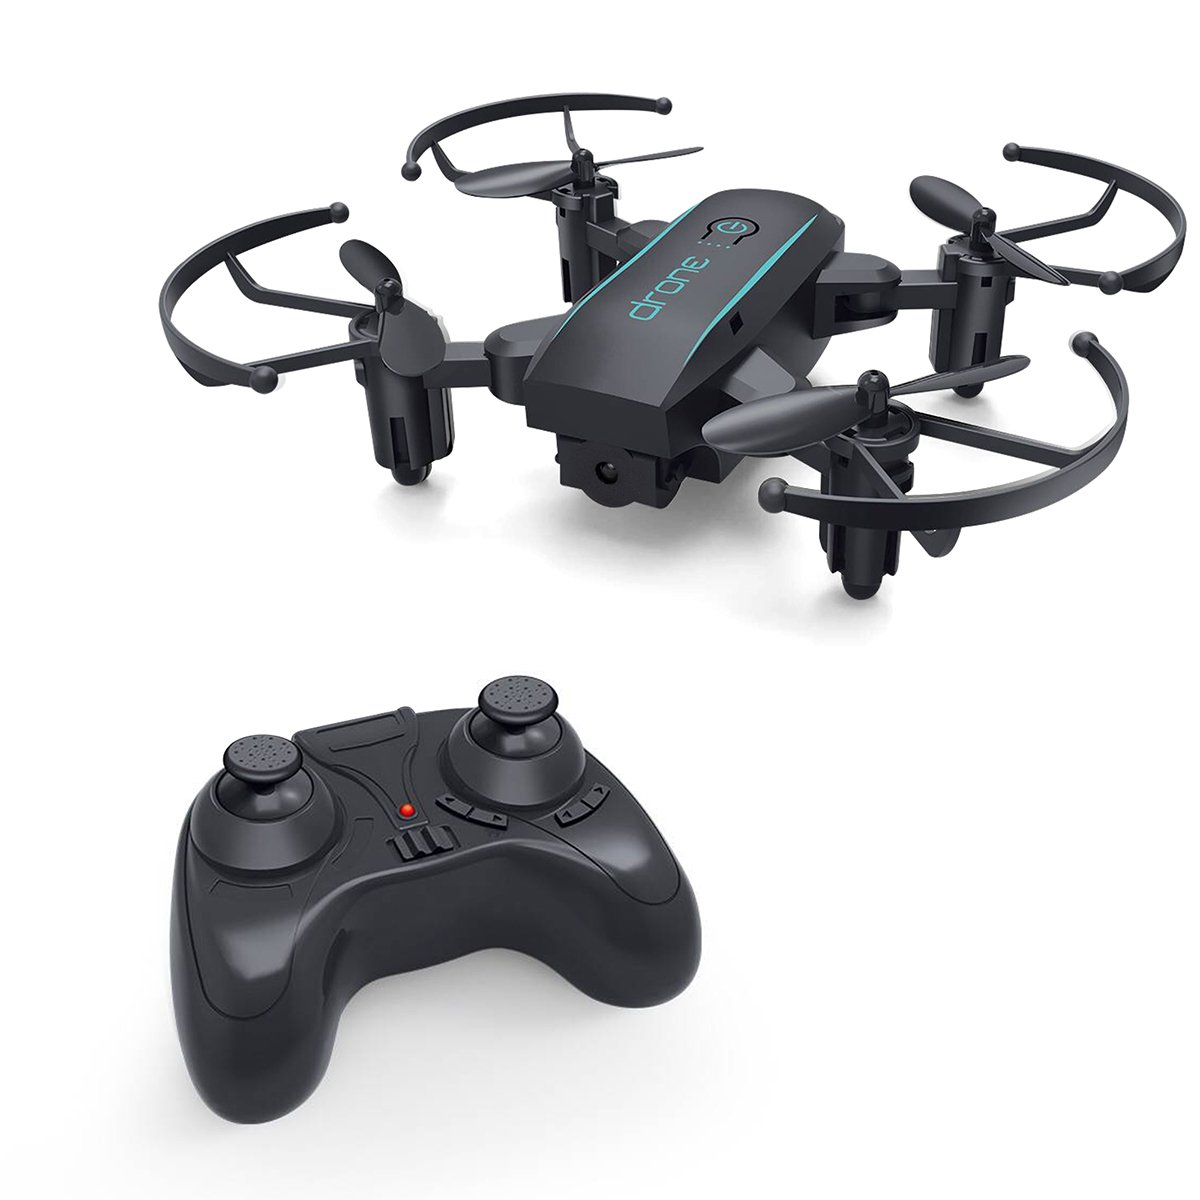 Ciho X01H Mini Foldable RC Drone Altitude Hold Headless Mode 3D Flip Kids Gift Protable Pocket 2.4GHz Nano Quadcopter Easy to Fly Beginners Kids Adults